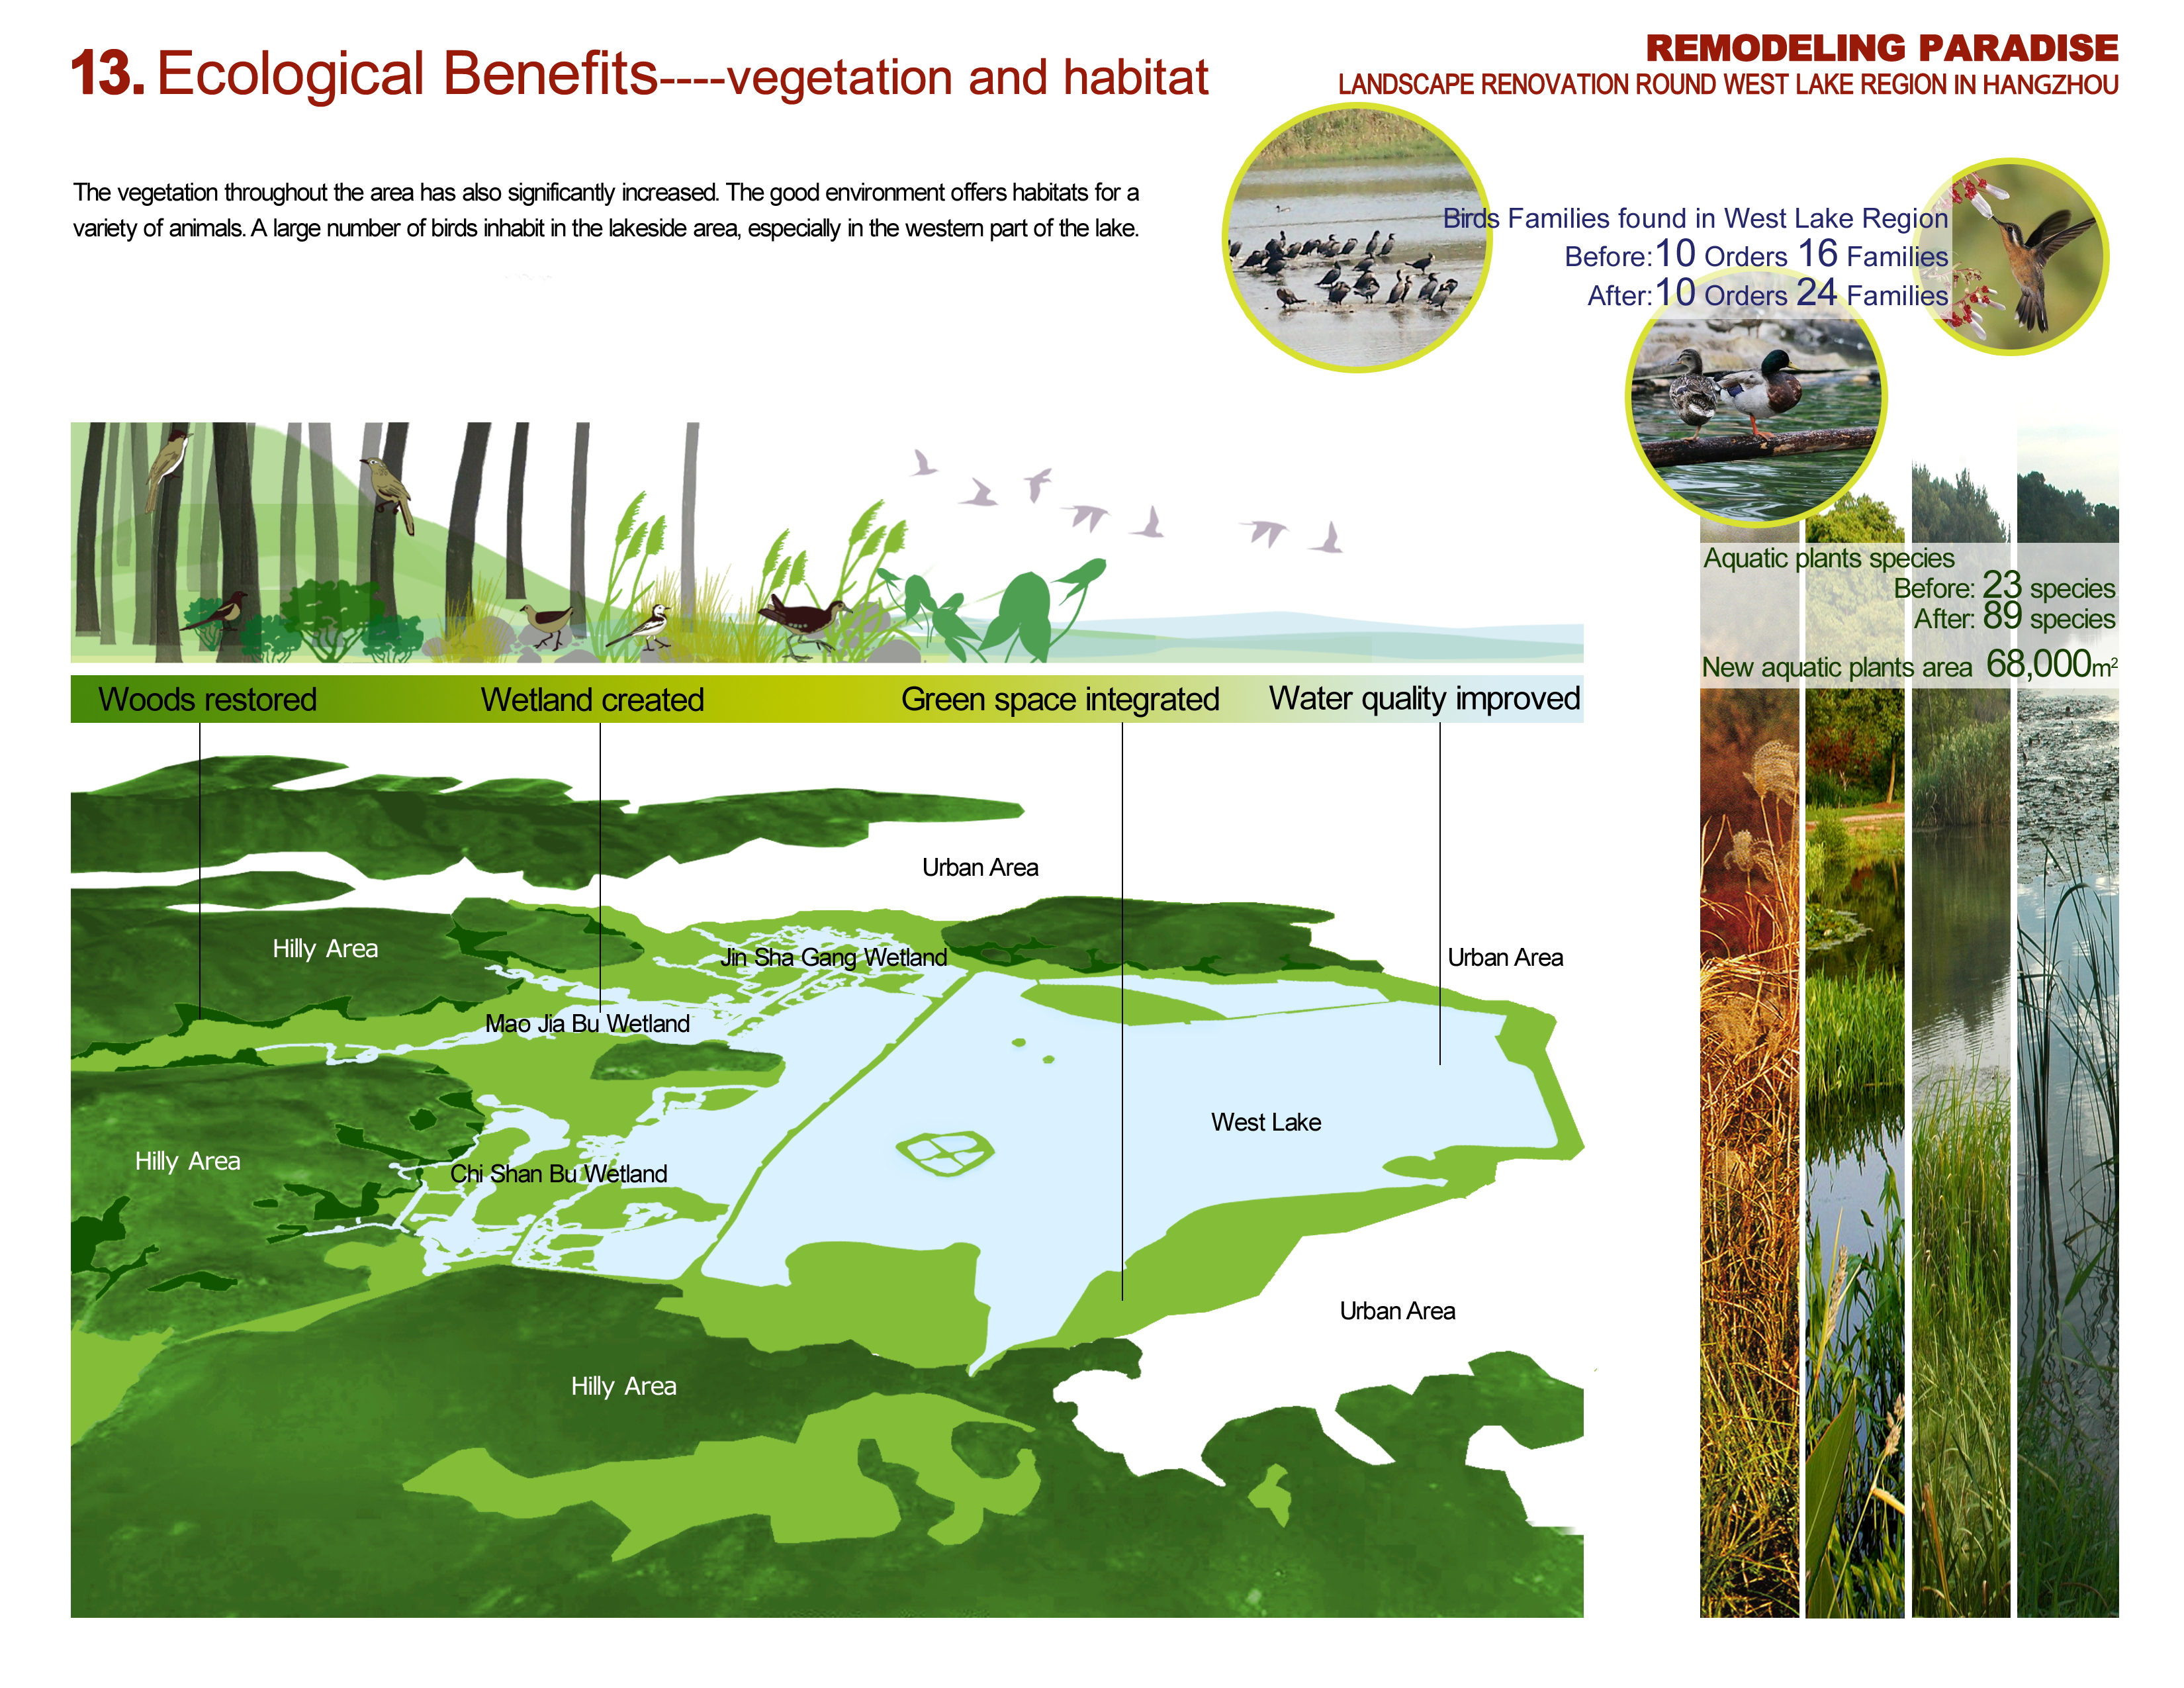 an analysis of the regions of vegetation Wadi arar in the northern border region of saudi arabia is one of the most important wadis of the kingdom the present study provides an analysis of vegetation types, life forms, as well as floristic categories and species distribution.